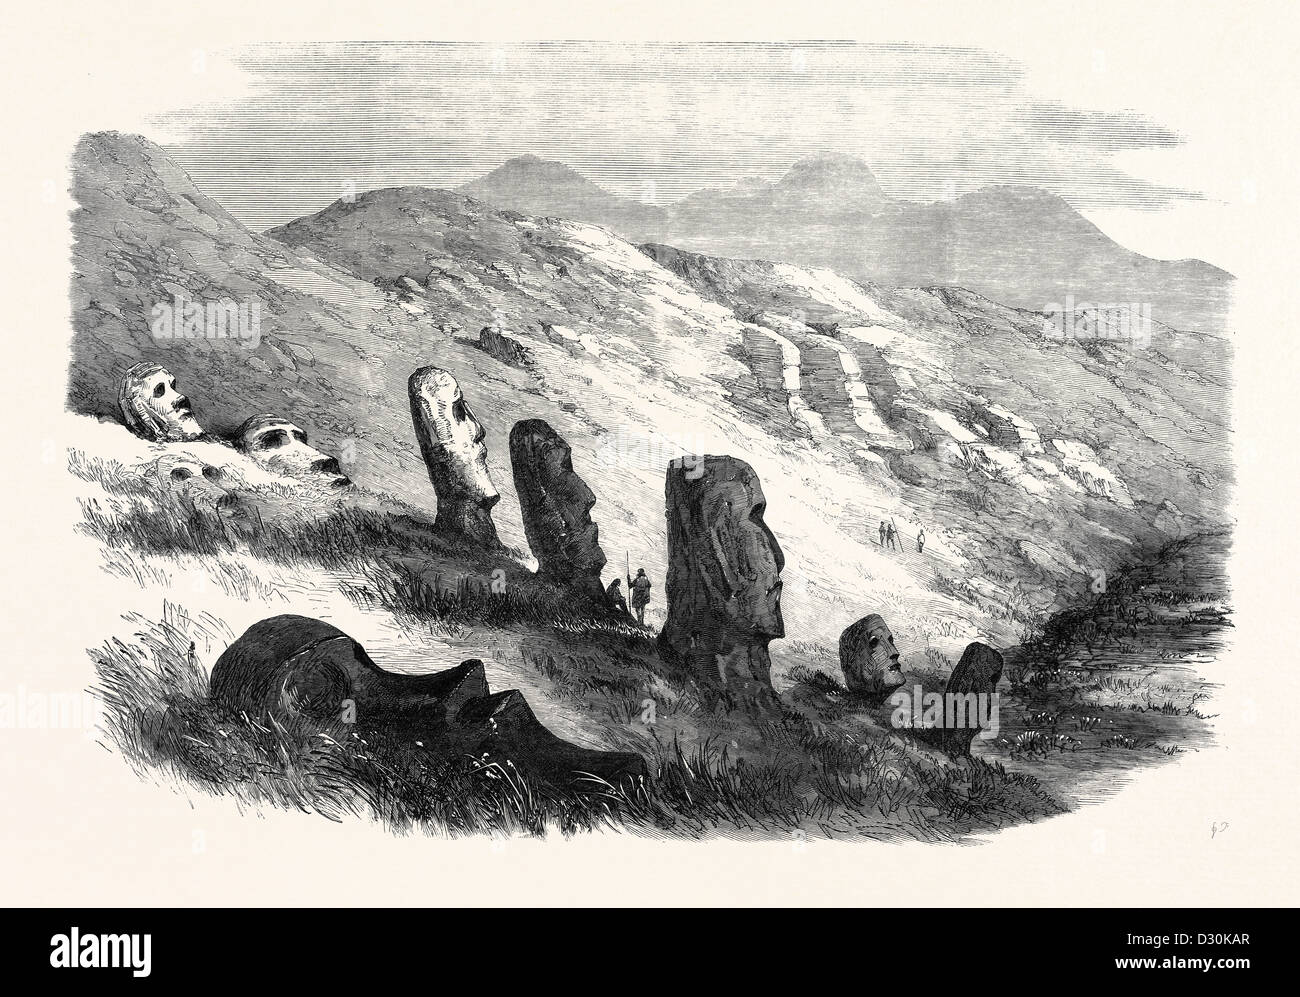 GROUP OF IMAGES INSIDE THE CRATER OF OTUITI EASTER ISLAND 1869 - Stock Image